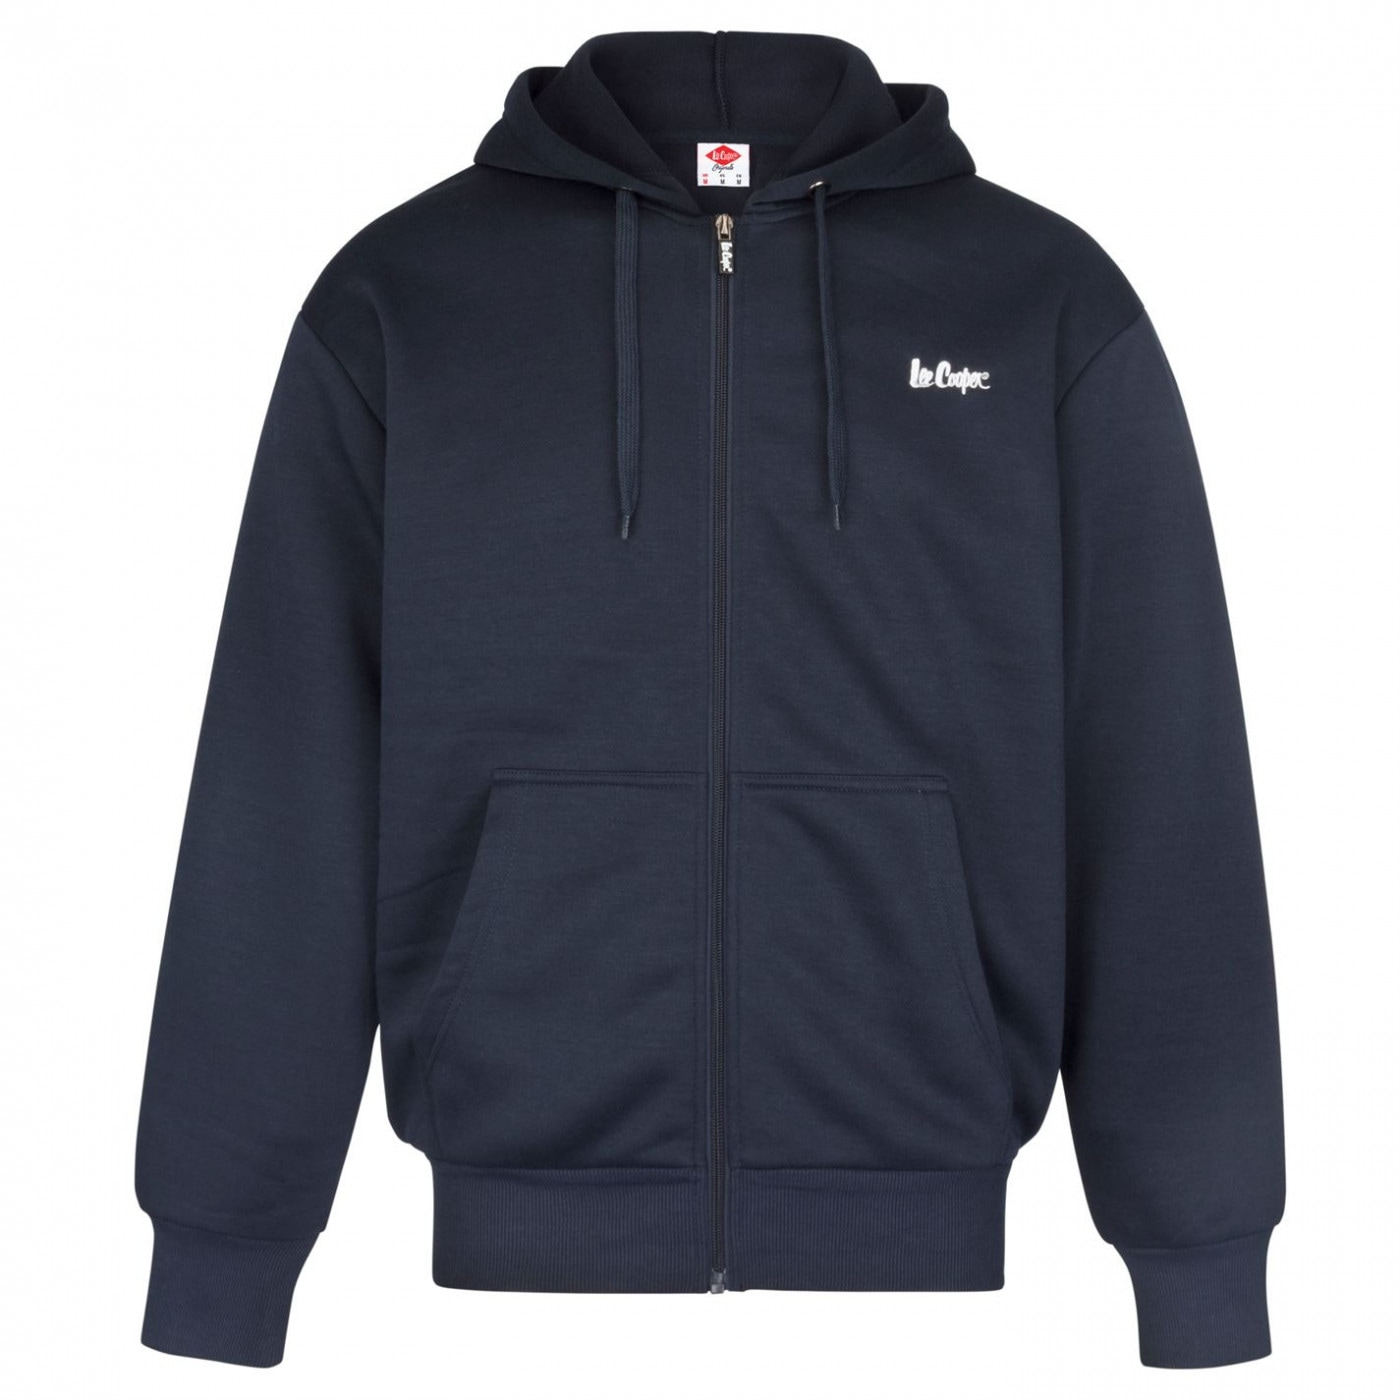 Lee Cooper Full Zip Hoody Mens